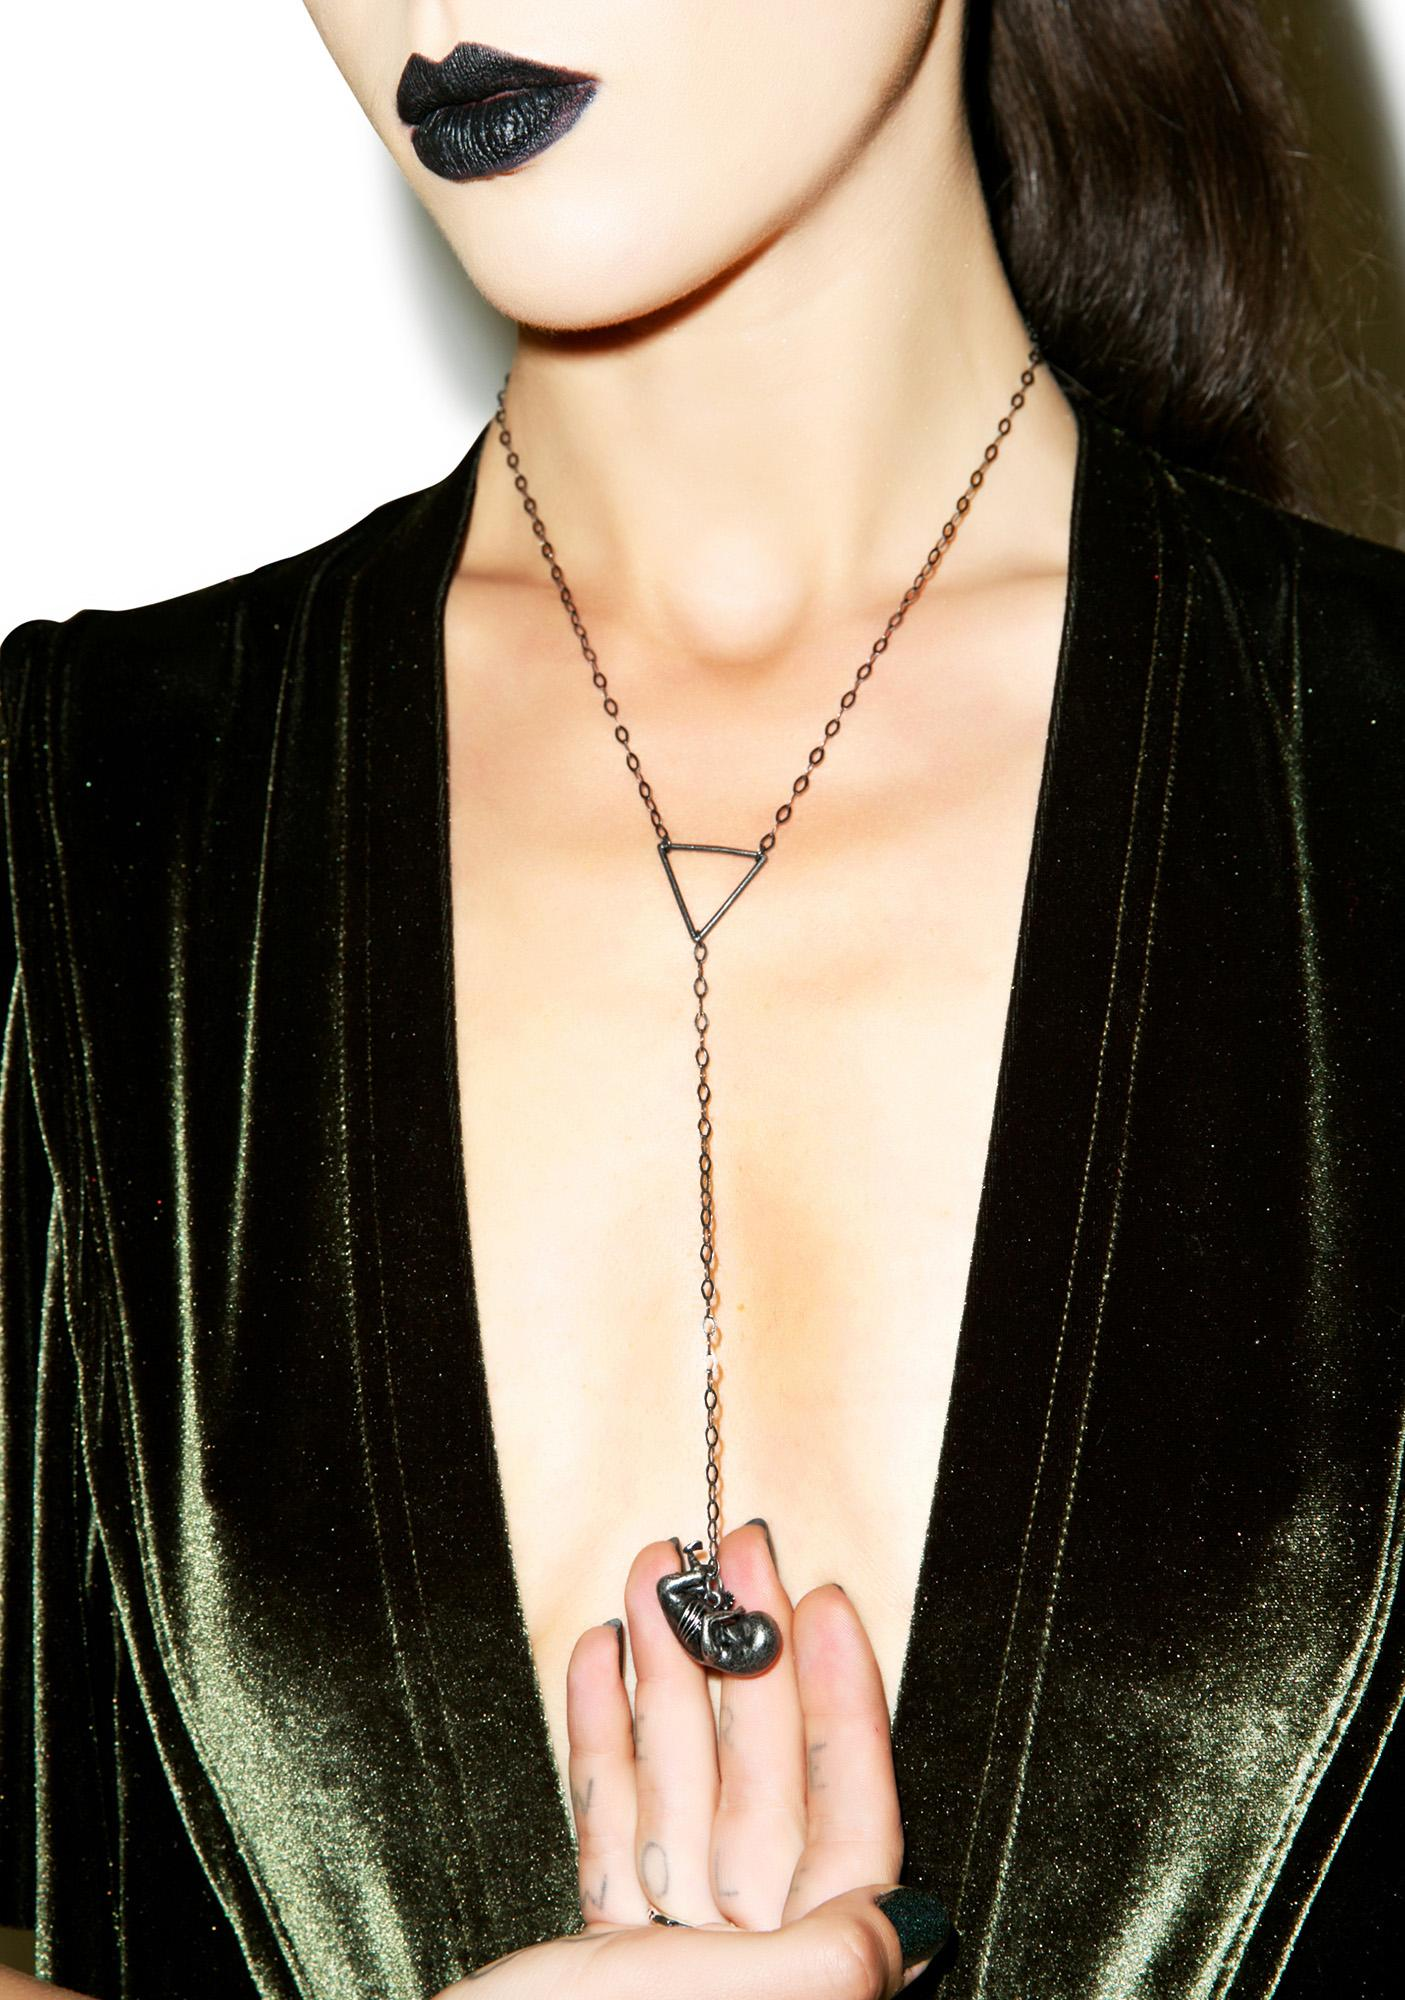 Disturbia Umbilical Noose Necklace